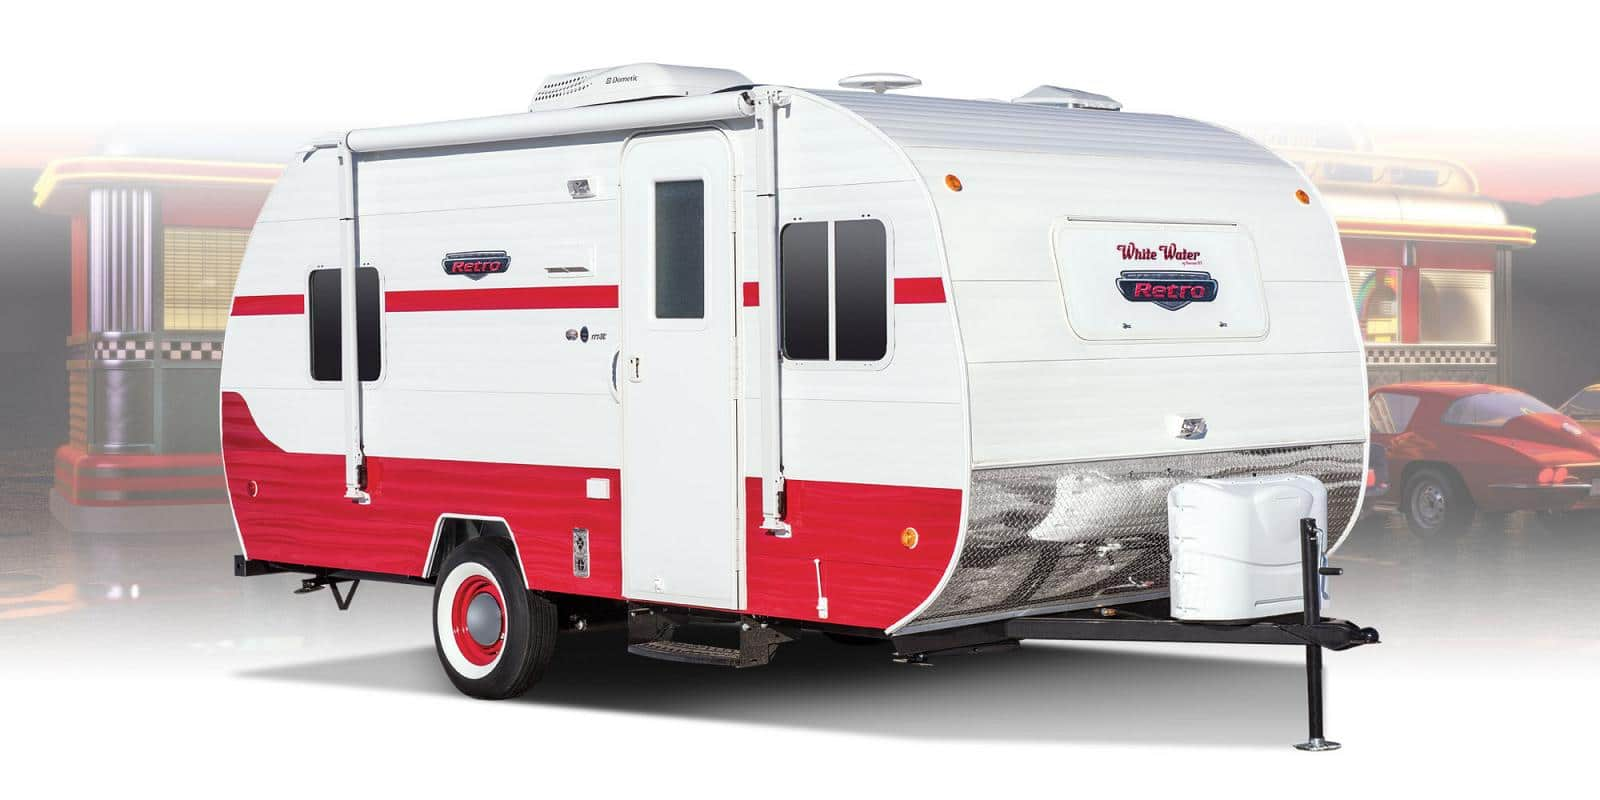 Travel Trailers Near Me >> Riverside Rv Lightweight Travel Trailers